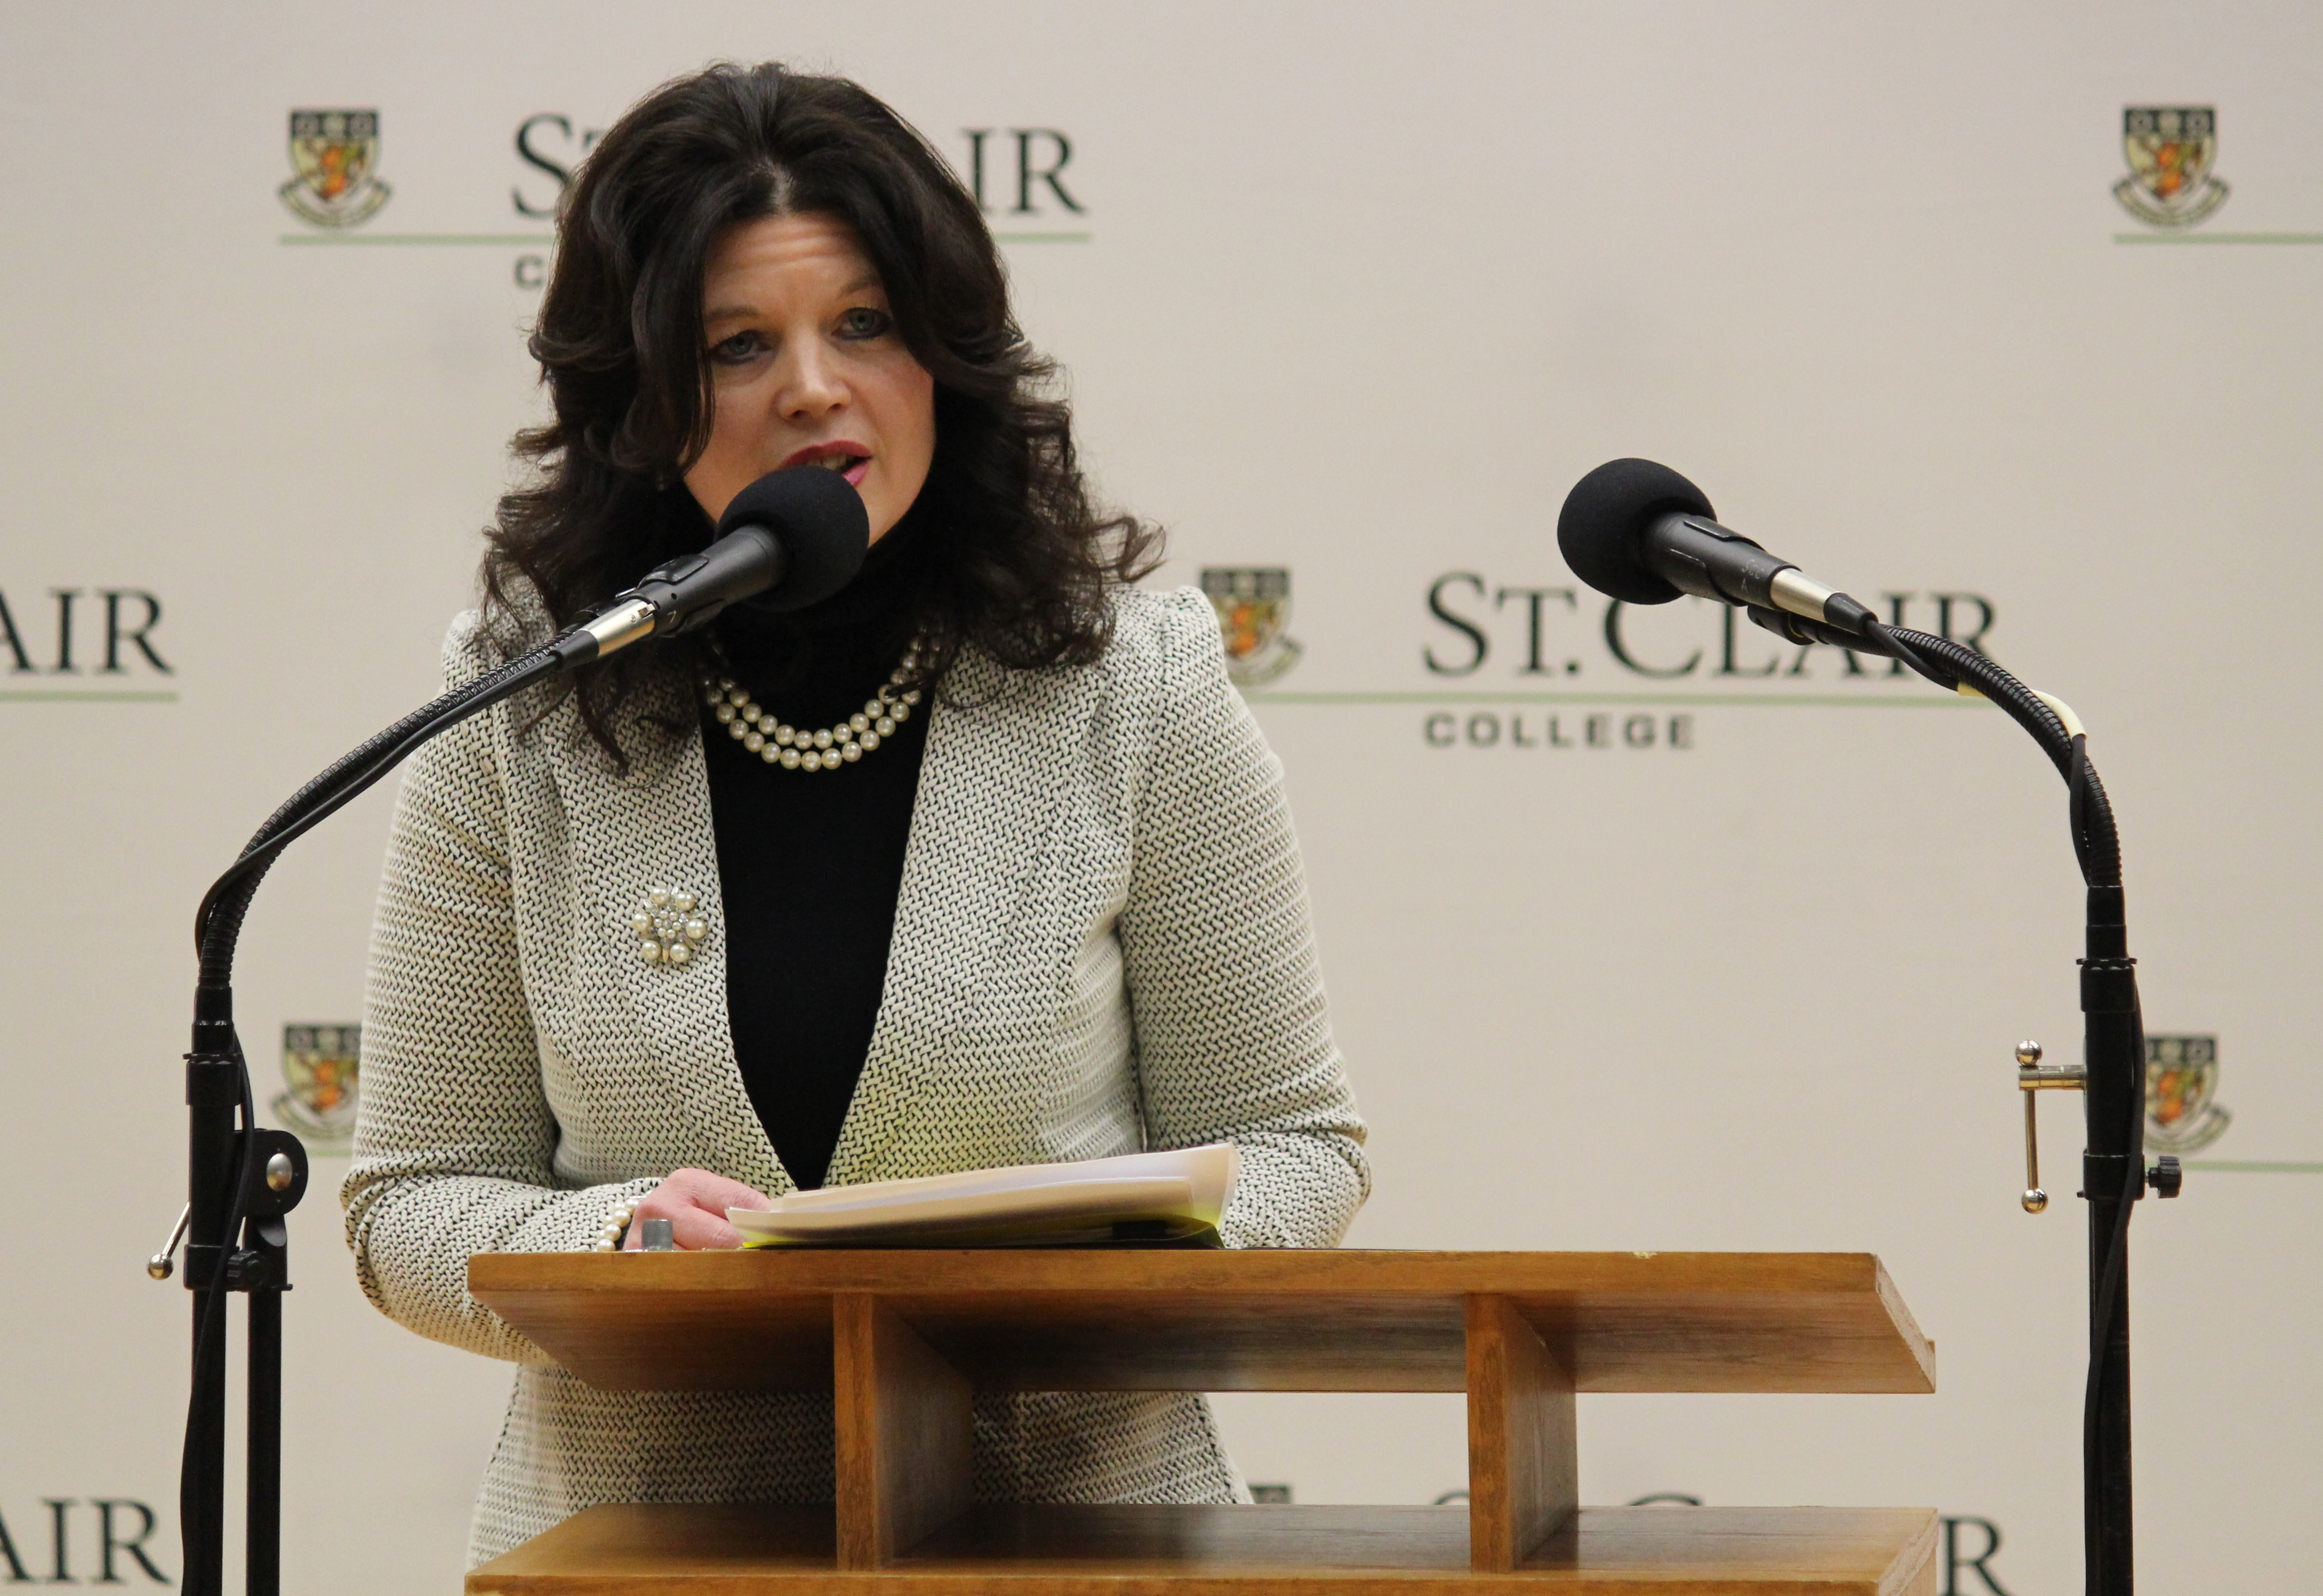 St. Clair College Senior VP of Operations Patti France speaks about taking over as school president in the fall, February 26, 2015. (Photo by Mike Vlasveld)